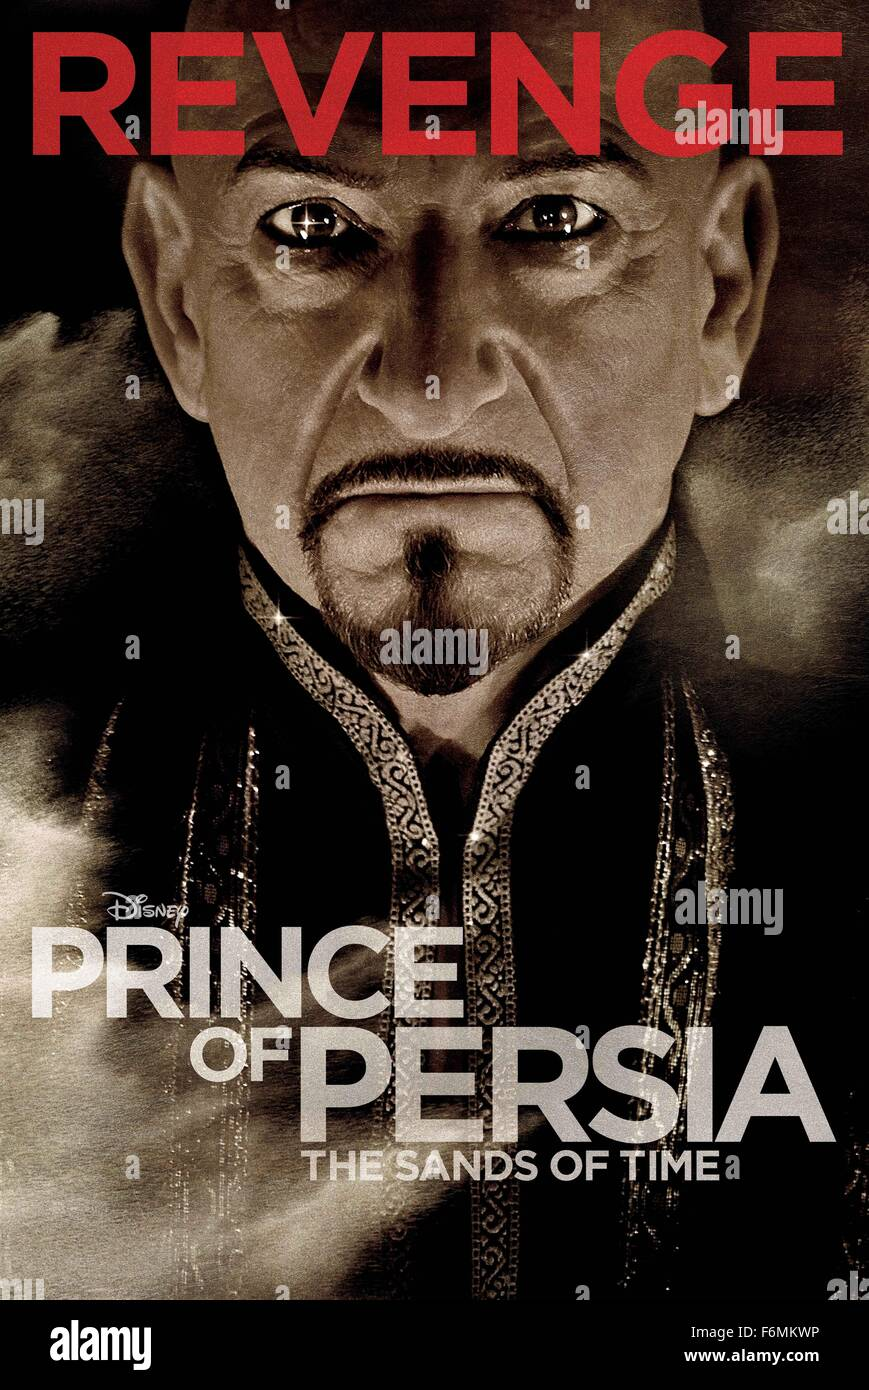 Release Date May 28 2010 Movie Title Prince Of Persia The Sands Stock Photo Alamy